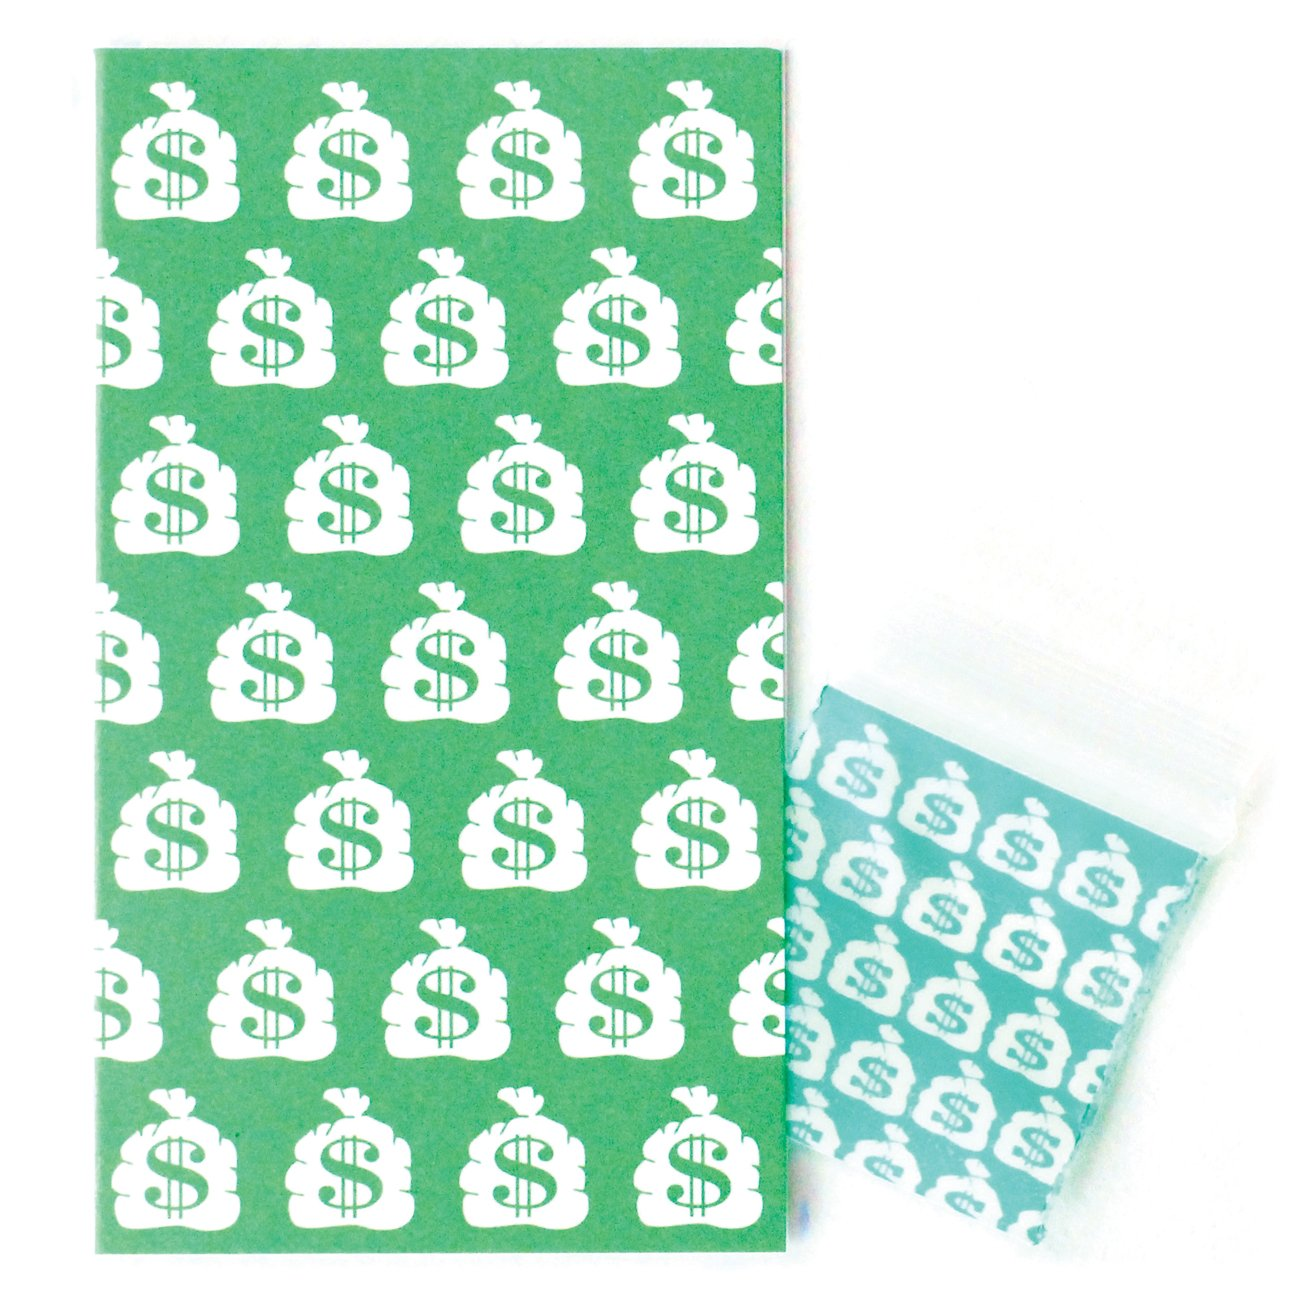 Money Bags Mini Enclosure Card with Matching Dime Bag (set of 3)